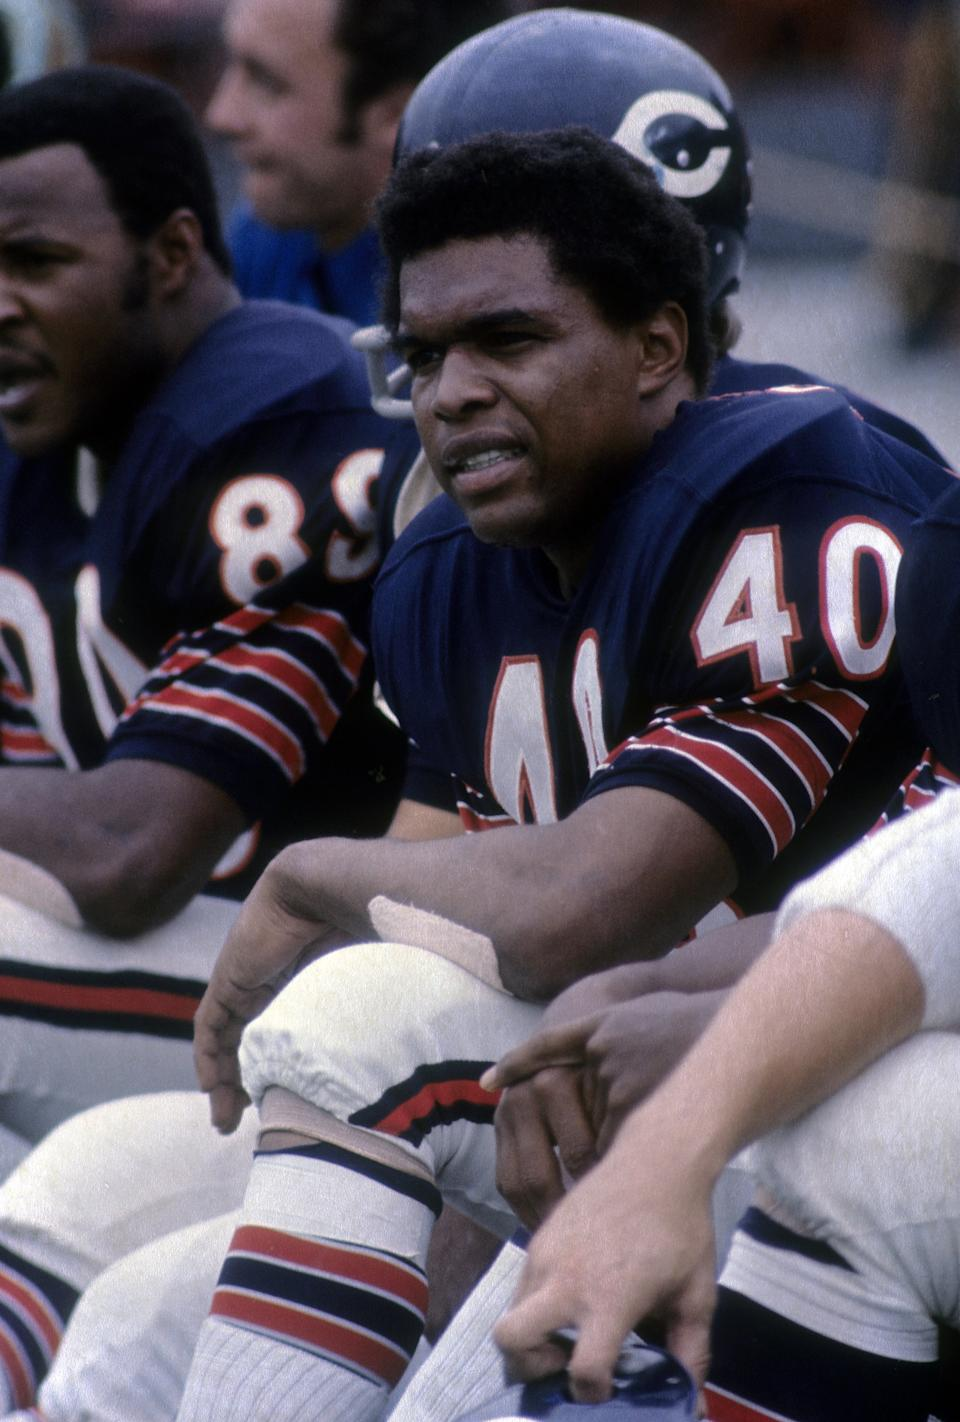 """One of the most dynamic players in NFL history, Sayers immediately made an impact in the NFL, setting a rookie record with 22 touchdowns in 1965. The """"Kansas Comet"""" got better from there. He was an All-Pro in each of his first five seasons and won two rushing titles. An electric kickoff returner, he retired as the league's all-time leader in return yards. Despite his career being cut short by injuries, Sayers was a first-ballot Hall of Fame selection in 1977. Sayers was 77 years old."""